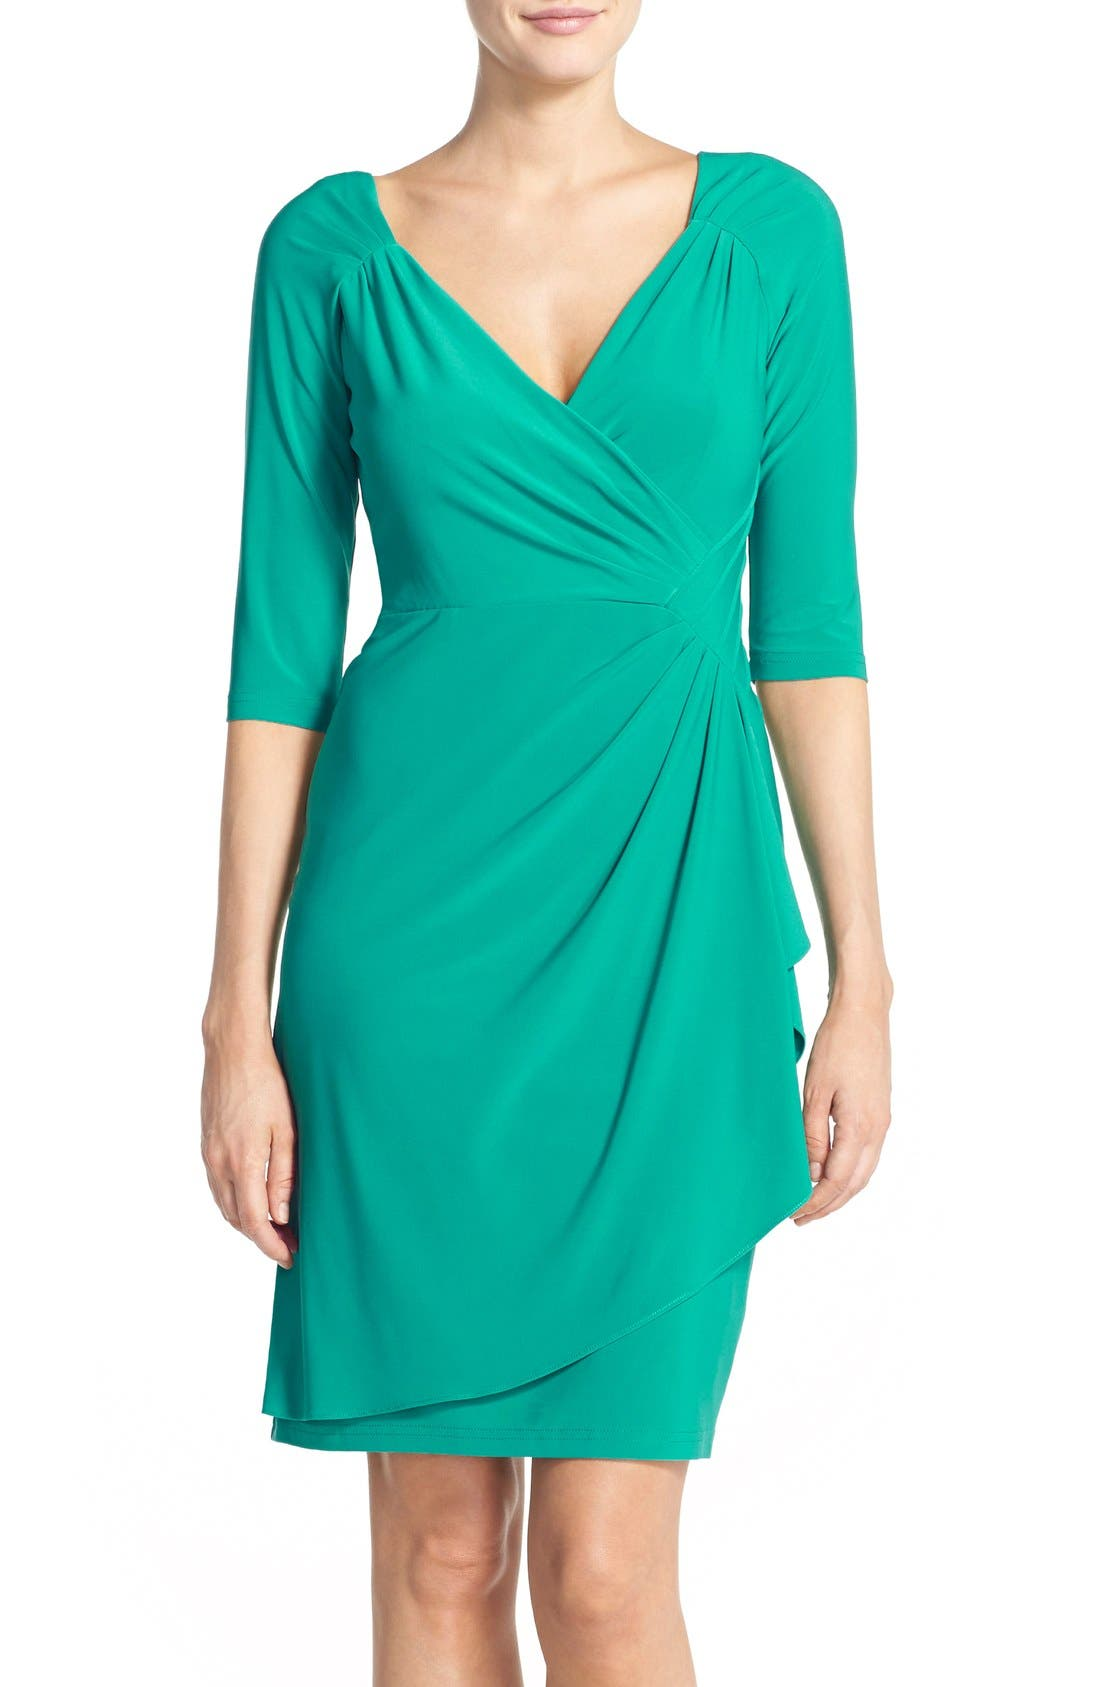 Alternate Image 1 Selected - Adrianna Papell Jersey Faux Wrap Dress